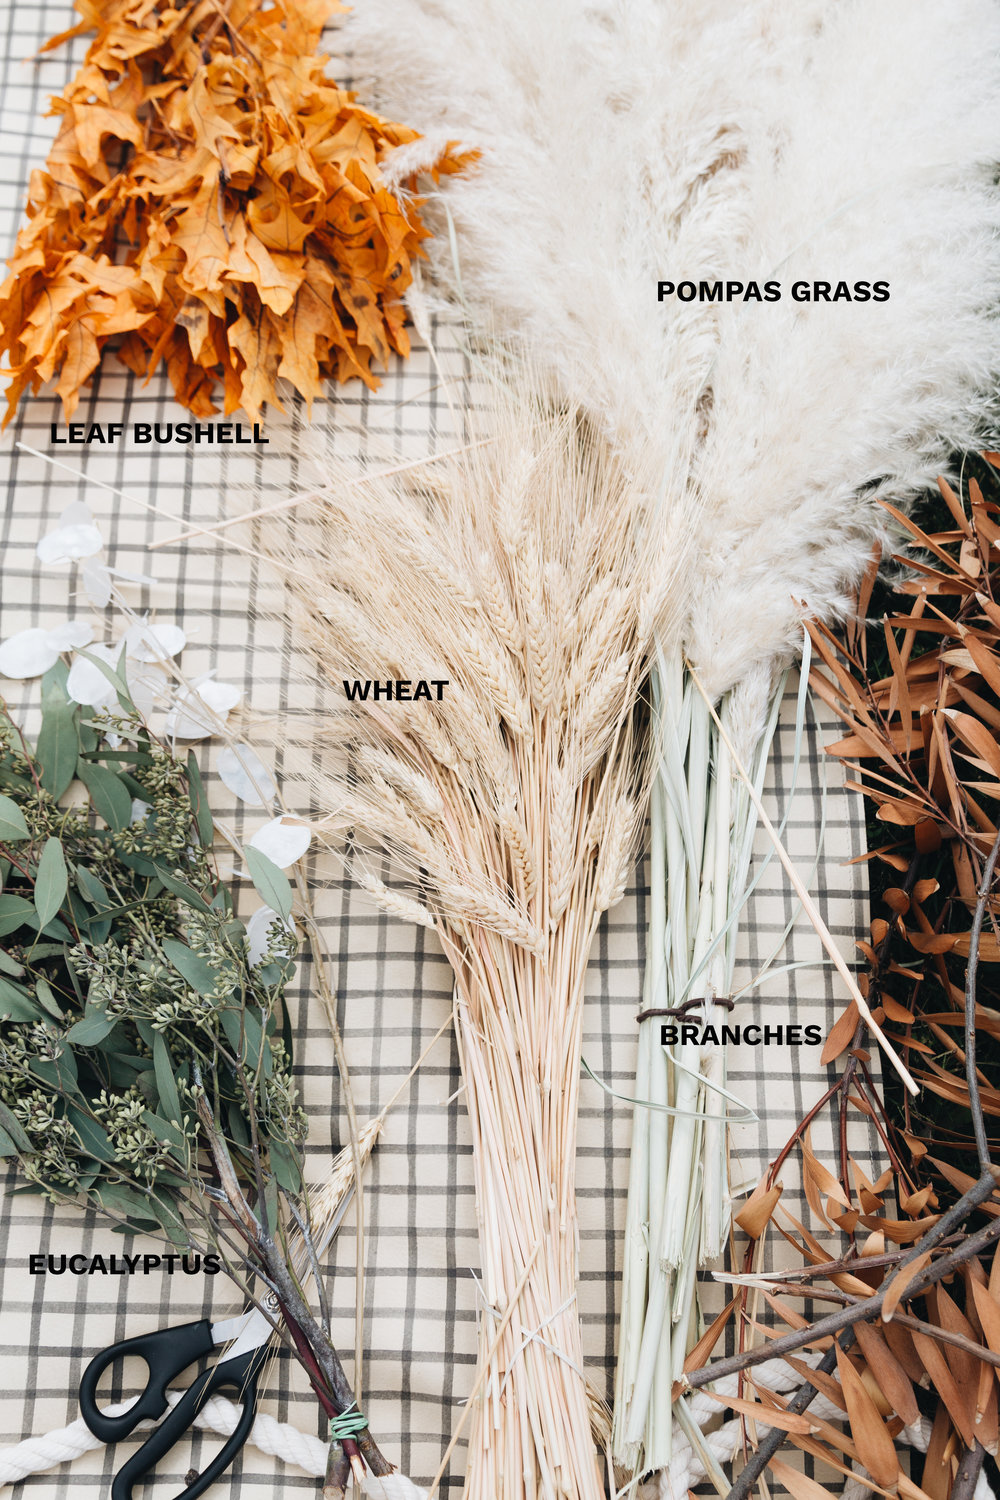 LEAF BUSHEL:  Ralphs Grocery  // POMPAS GRASS:  I chopped mine on the side of the road but here's a link to order online  // EUCALYPTUS:  Trader Joes  // WHEAT:  Marshalls  or  Online Here  // BRANCHES: I chopped mine off a dead tree in my yard, so you could do the same or here are some  branches online